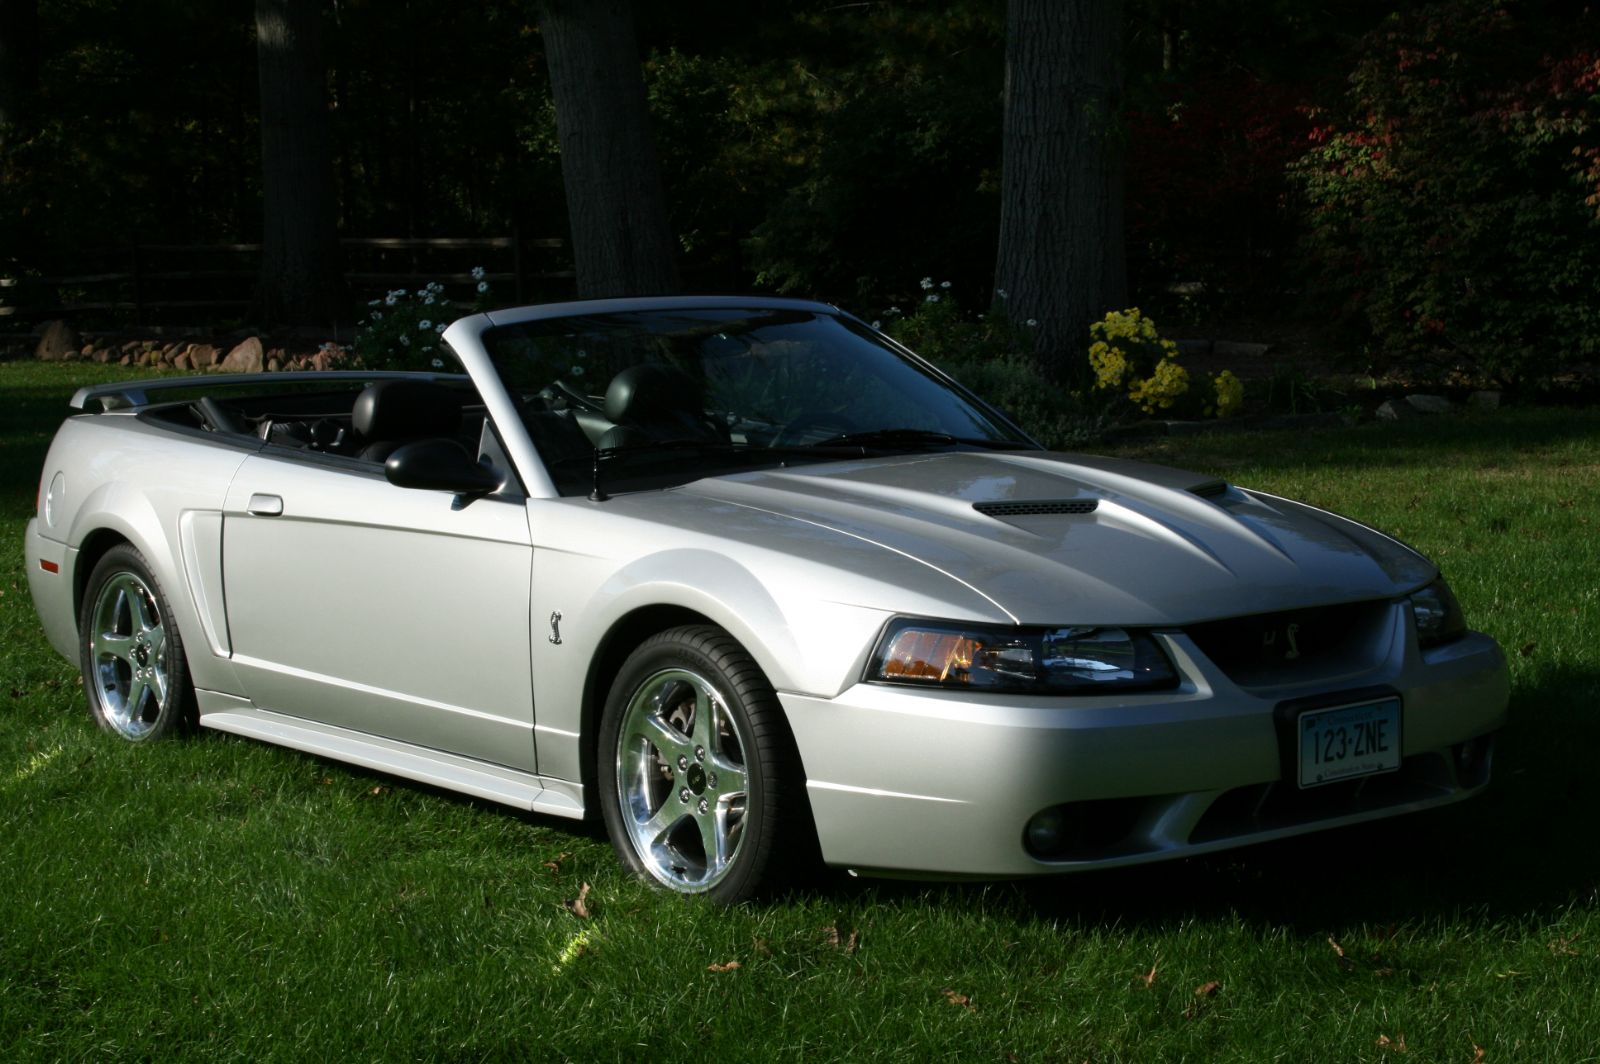 2001 ford svt mustang cobra for sale suffield connecticut. Black Bedroom Furniture Sets. Home Design Ideas